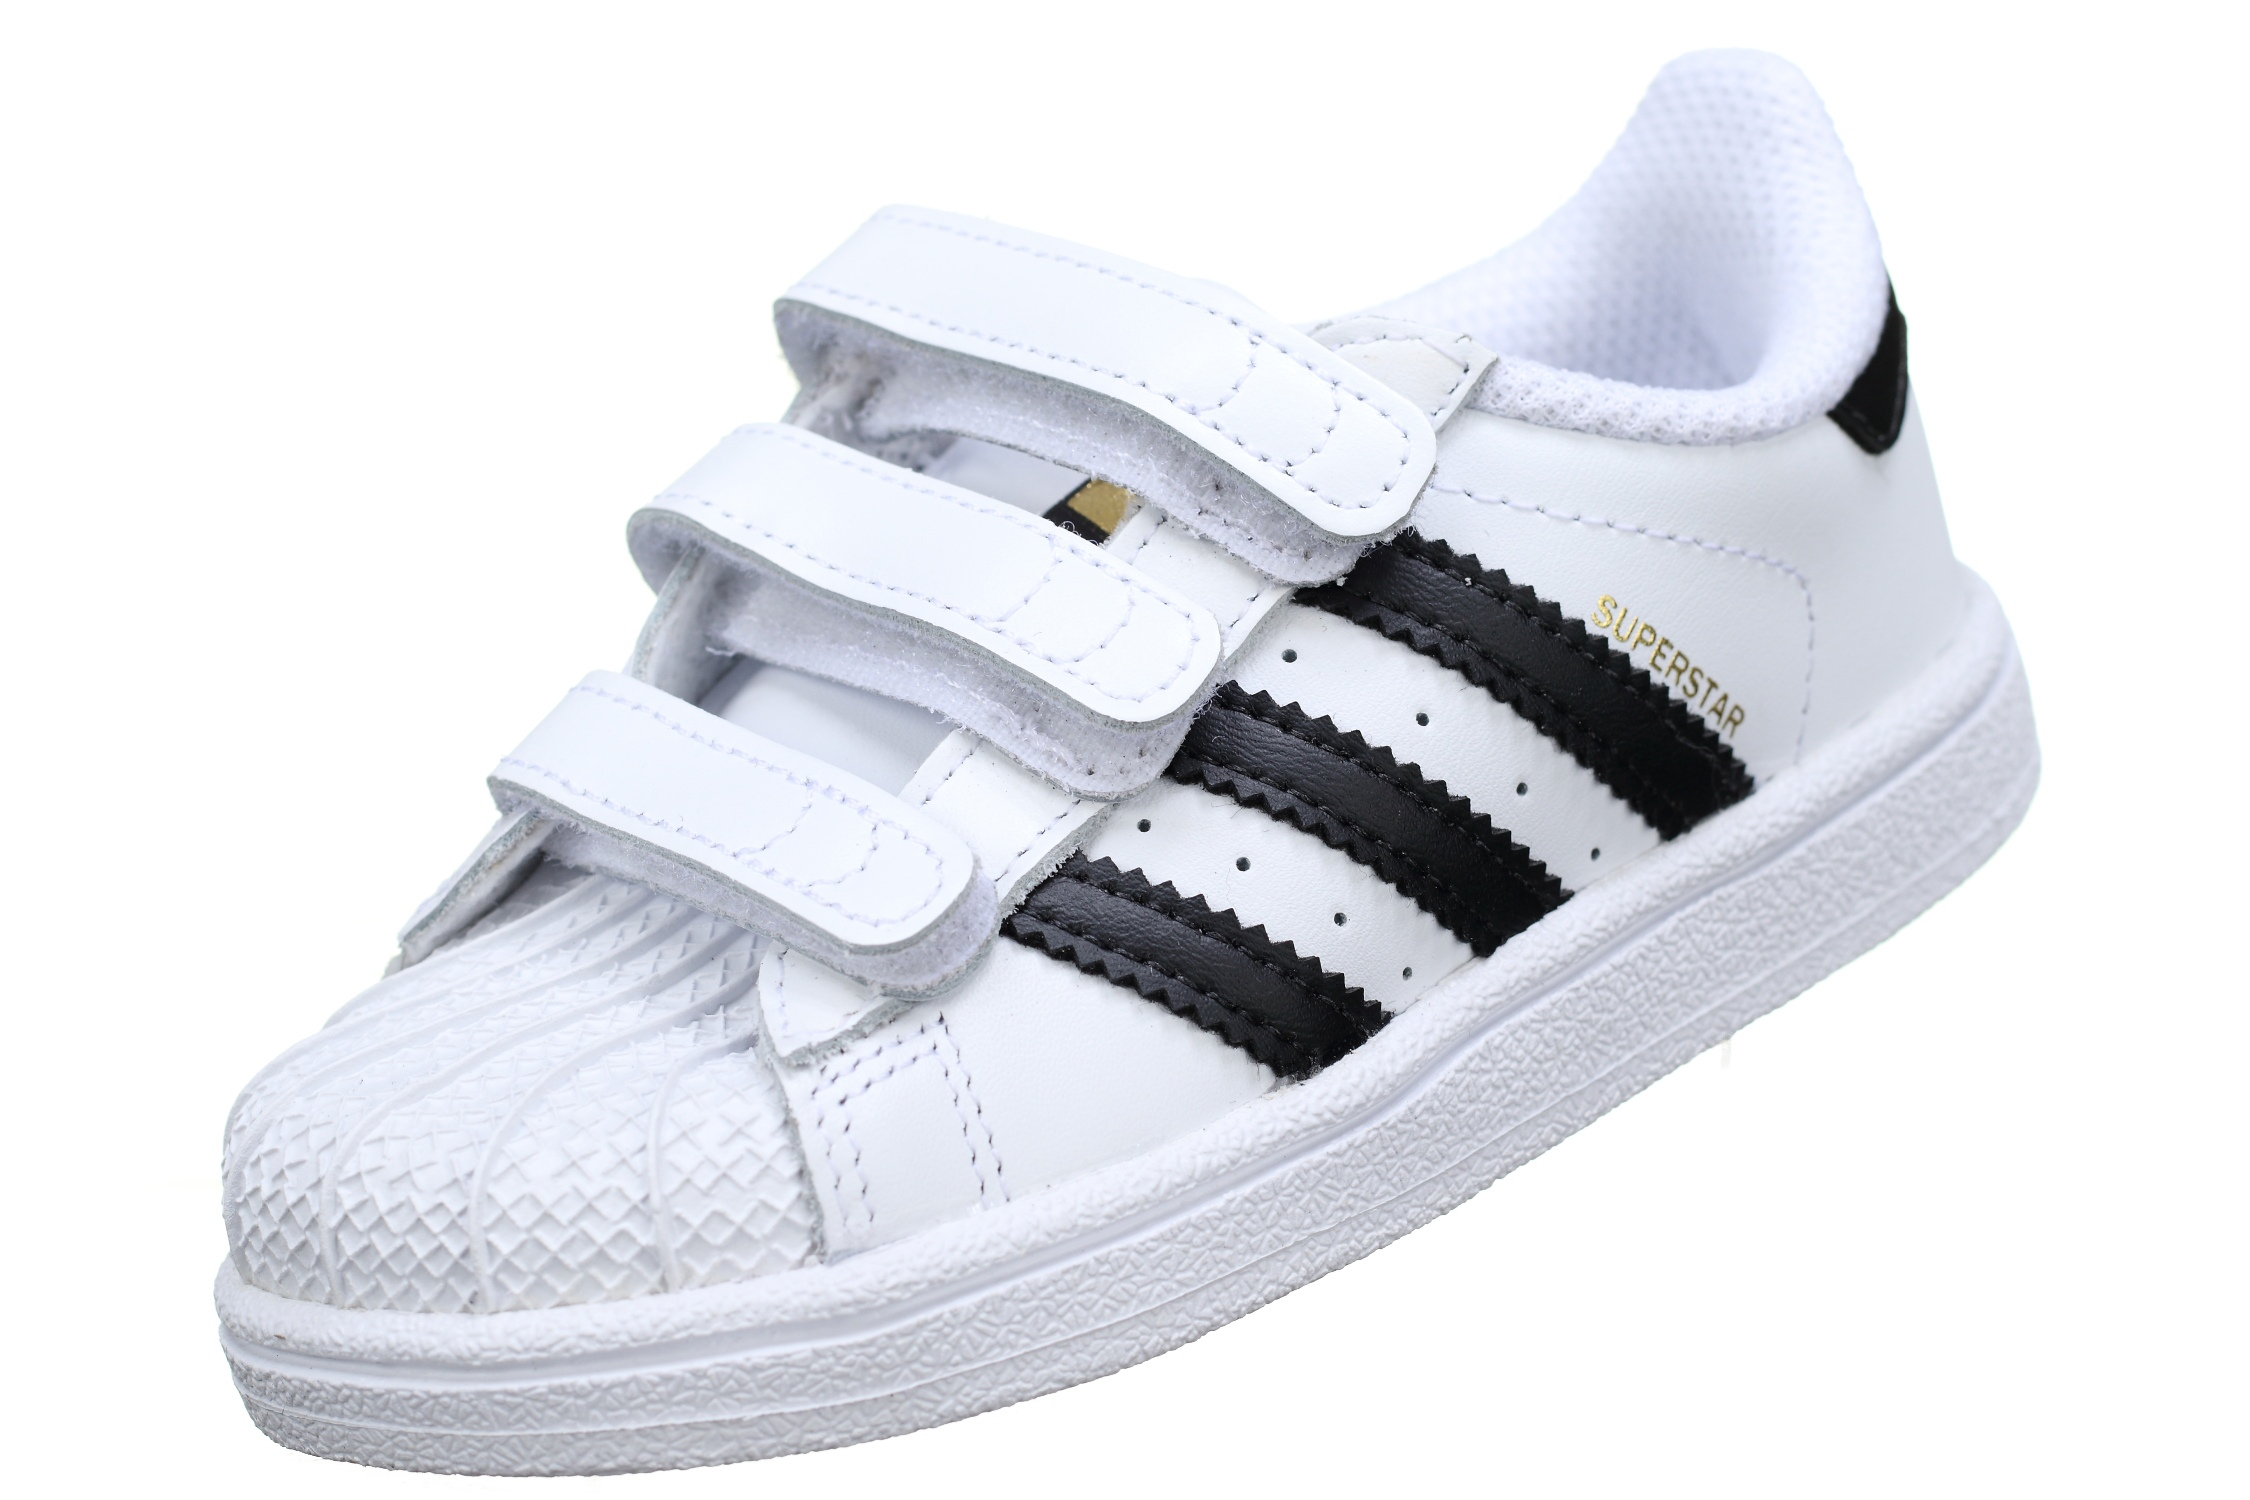 http://www.leadermode.com/157112/adidas-superstar-cf-i-bz0418-white-black.jpg